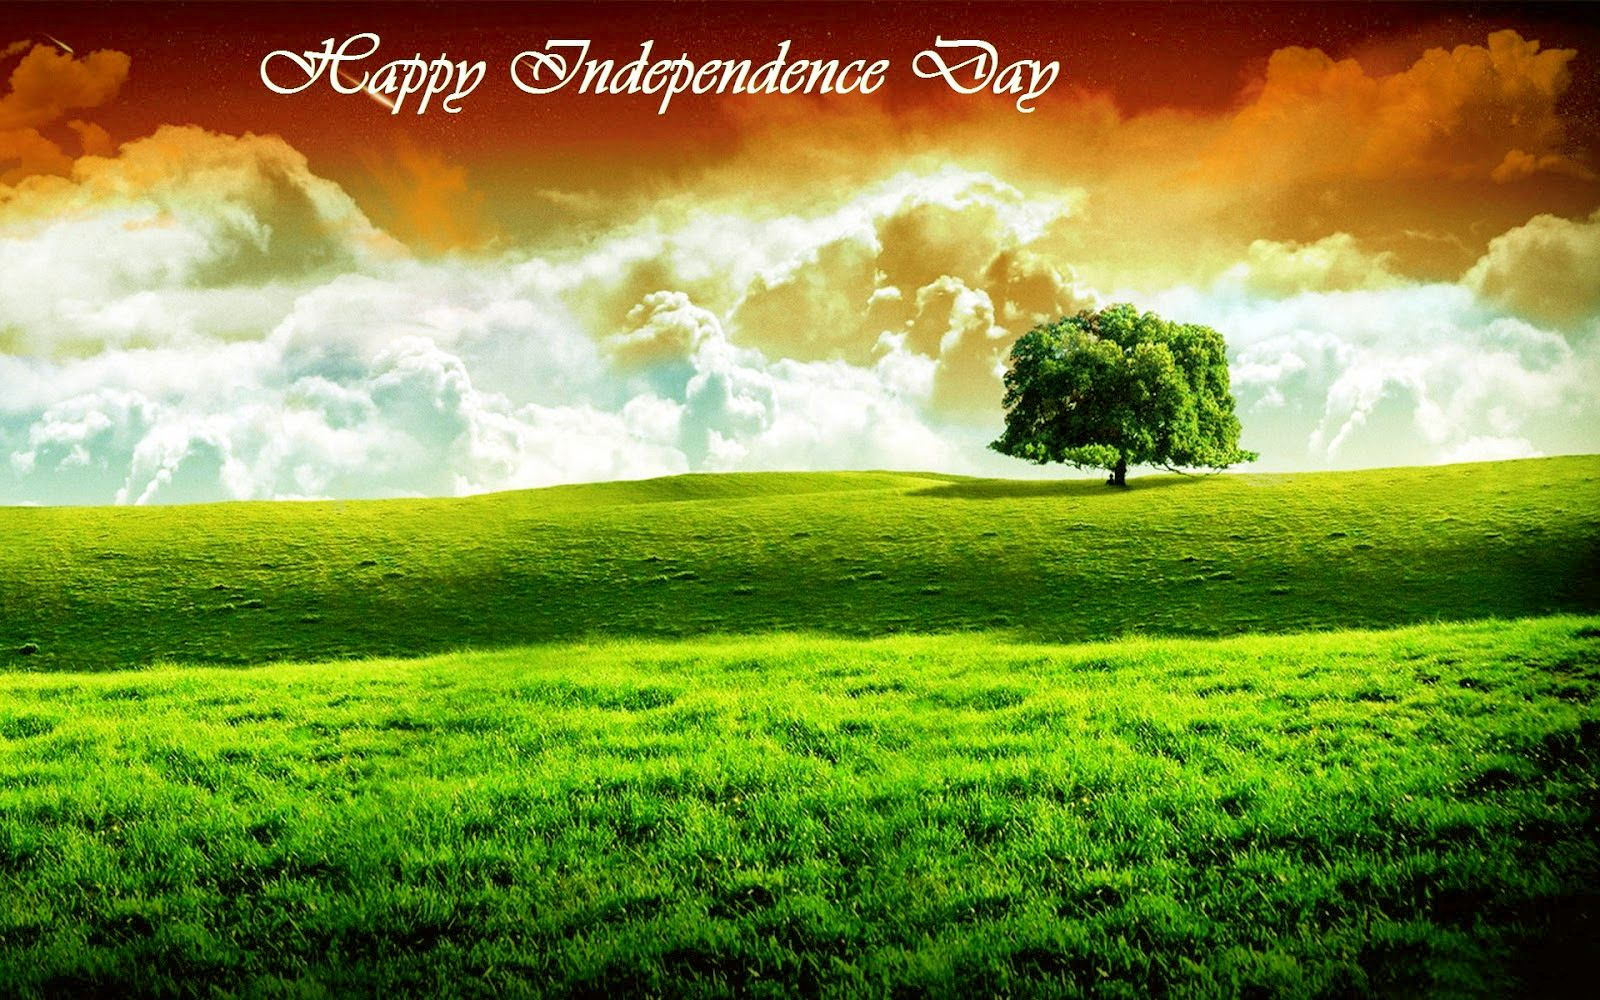 Wallpaper download beautiful - Independence Day Wallpapers Free Download Images Beautiful Wallpaper